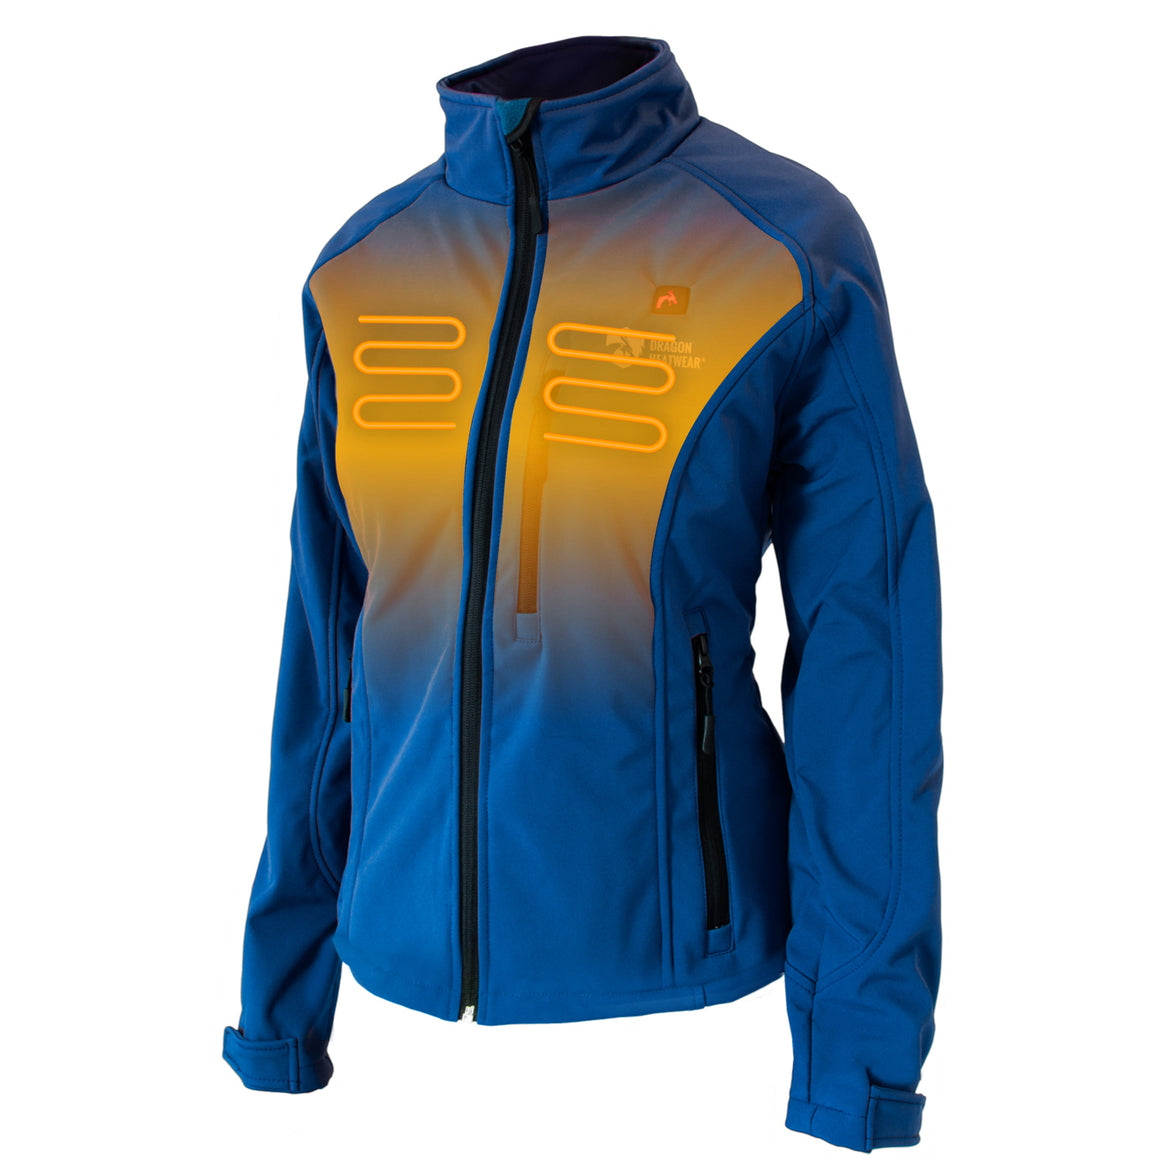 Wyvern Women's Heated Jacket Front View - Endeavor Color